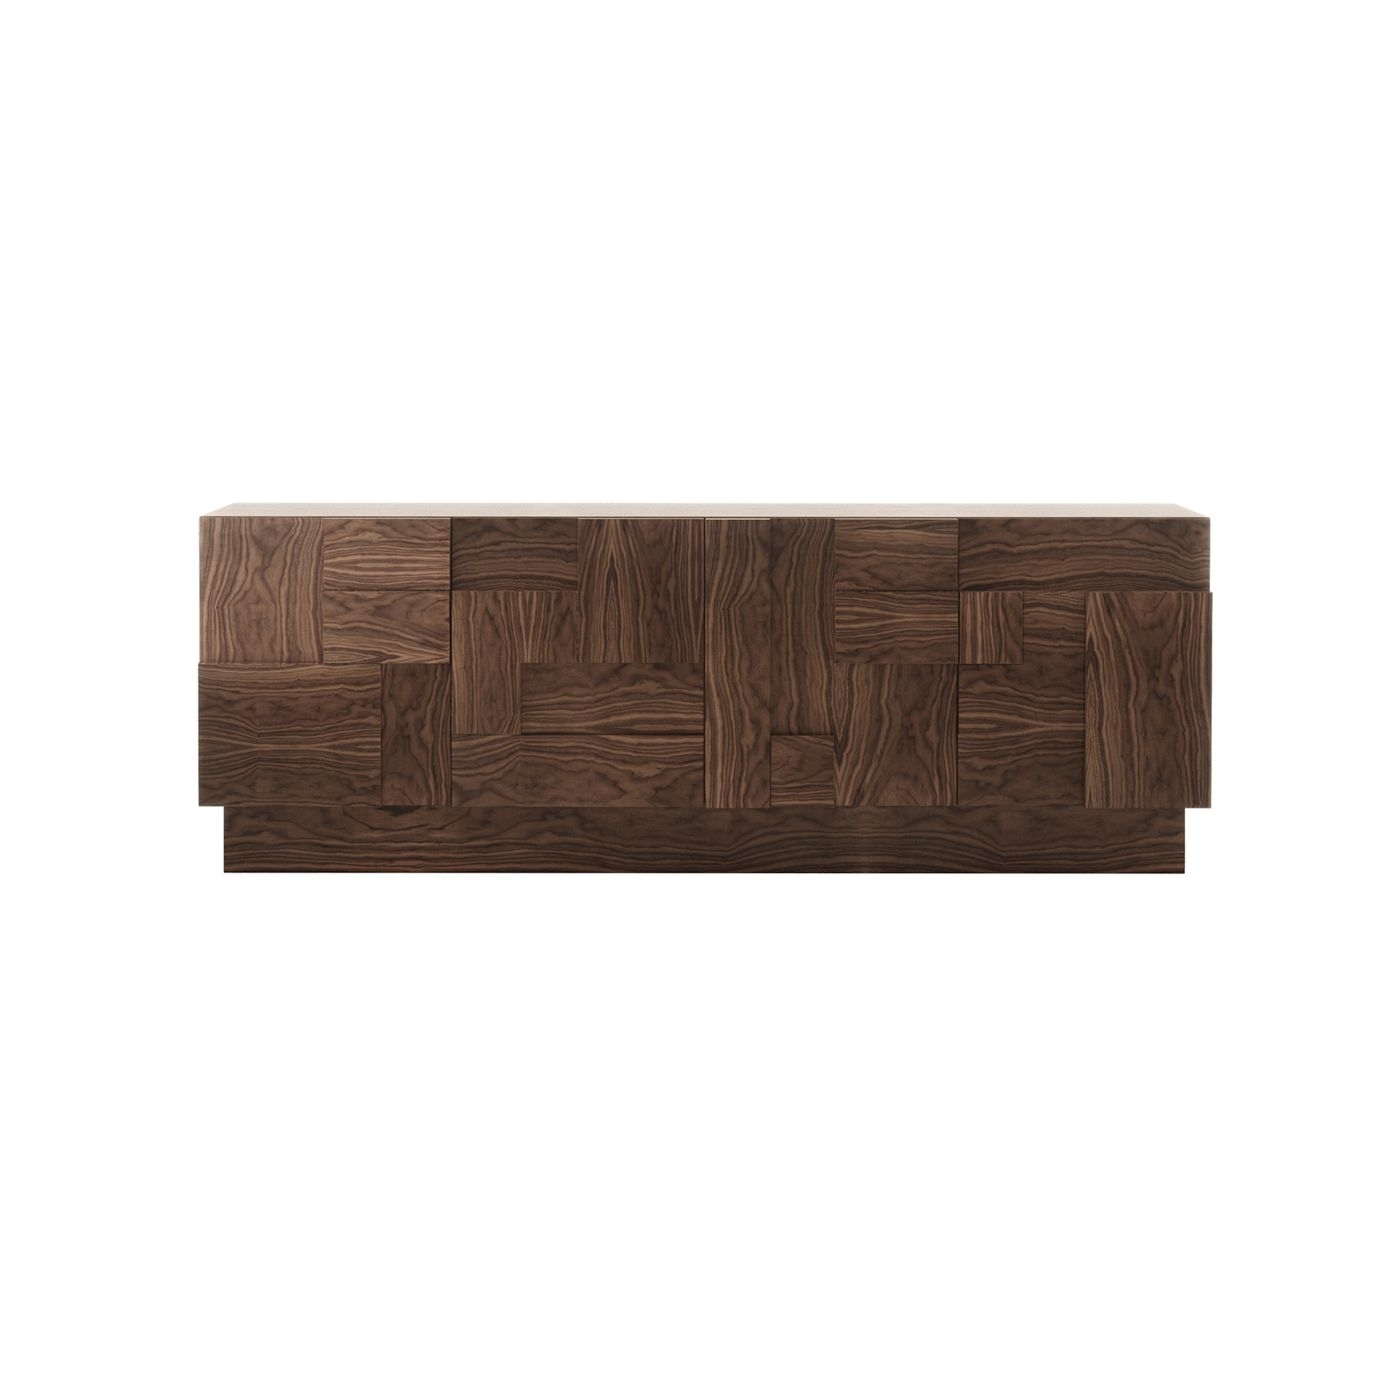 Laskasas | Decorar A Vida This Stunning Wooden Sideboard Has Four Intended For 2018 Ironwood 4 Door Sideboards (View 6 of 20)